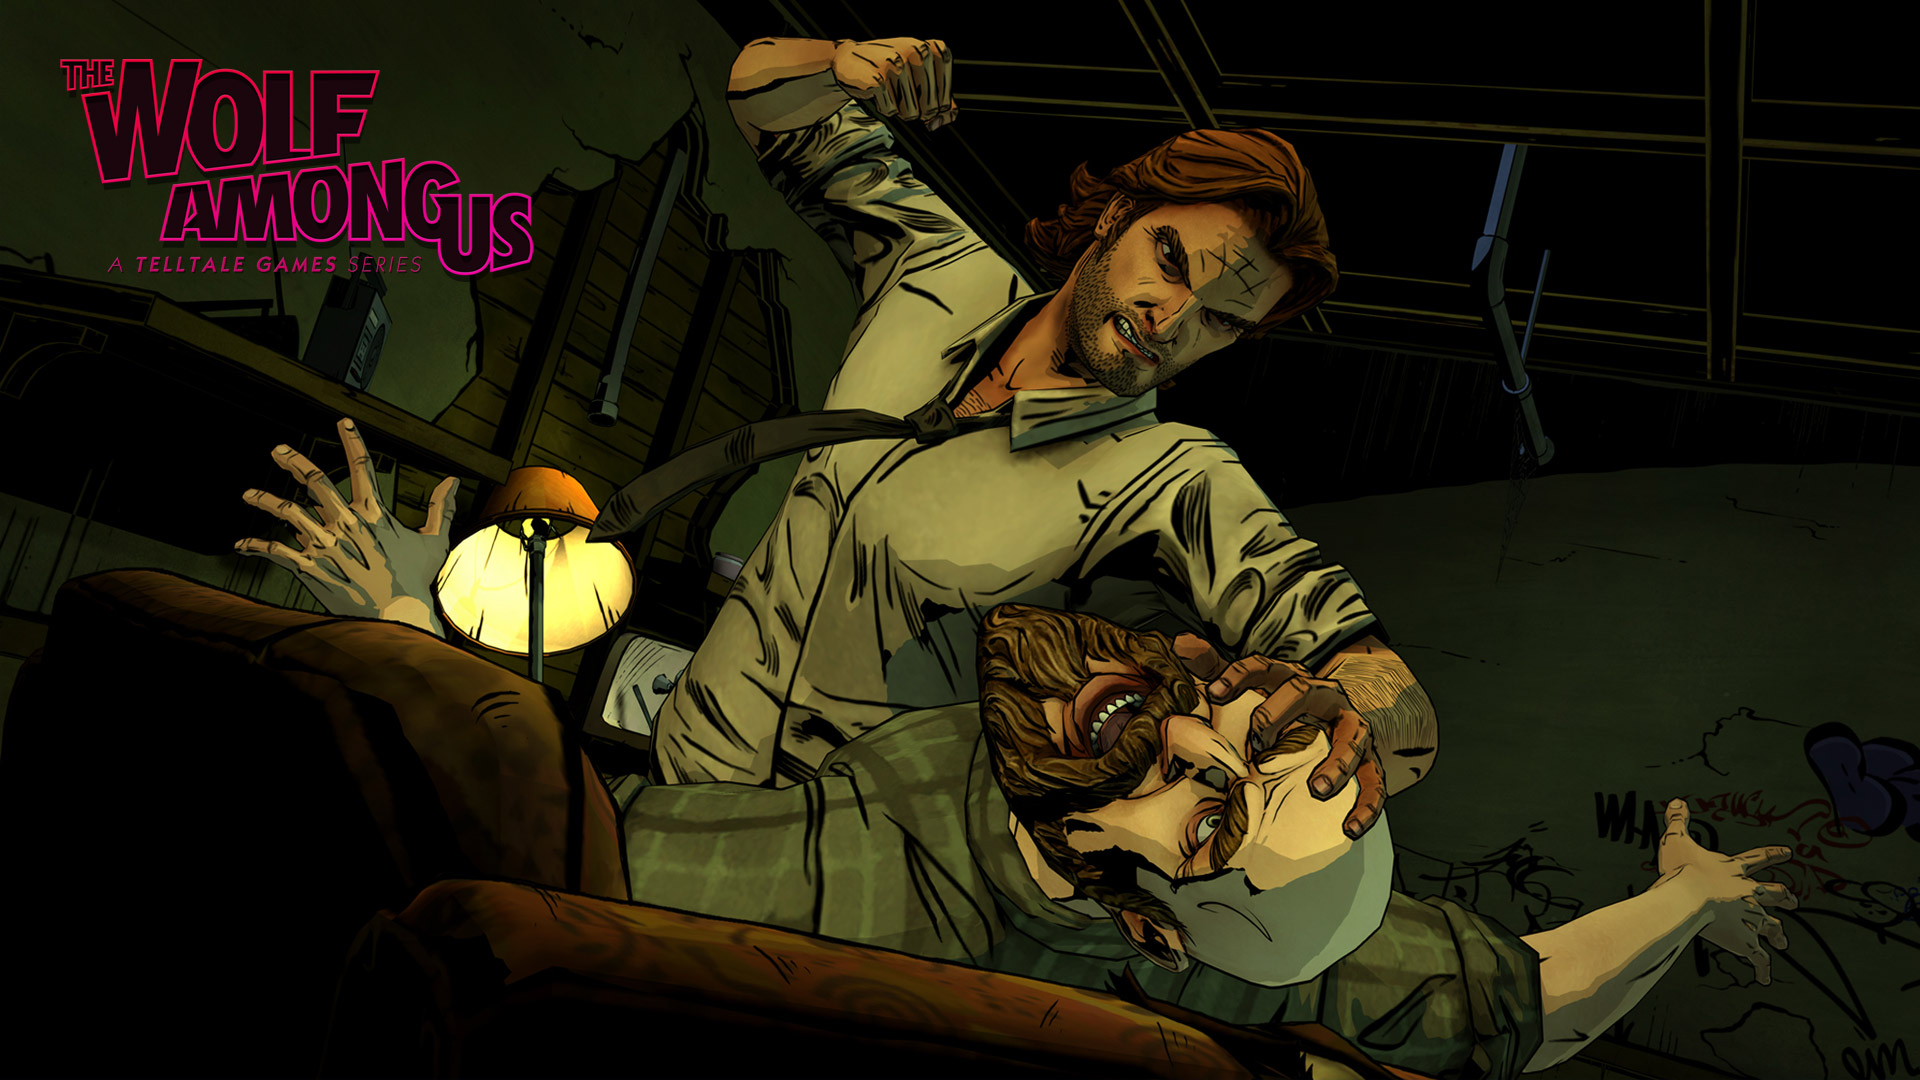 The Wolf Among Us Wallpaper 3